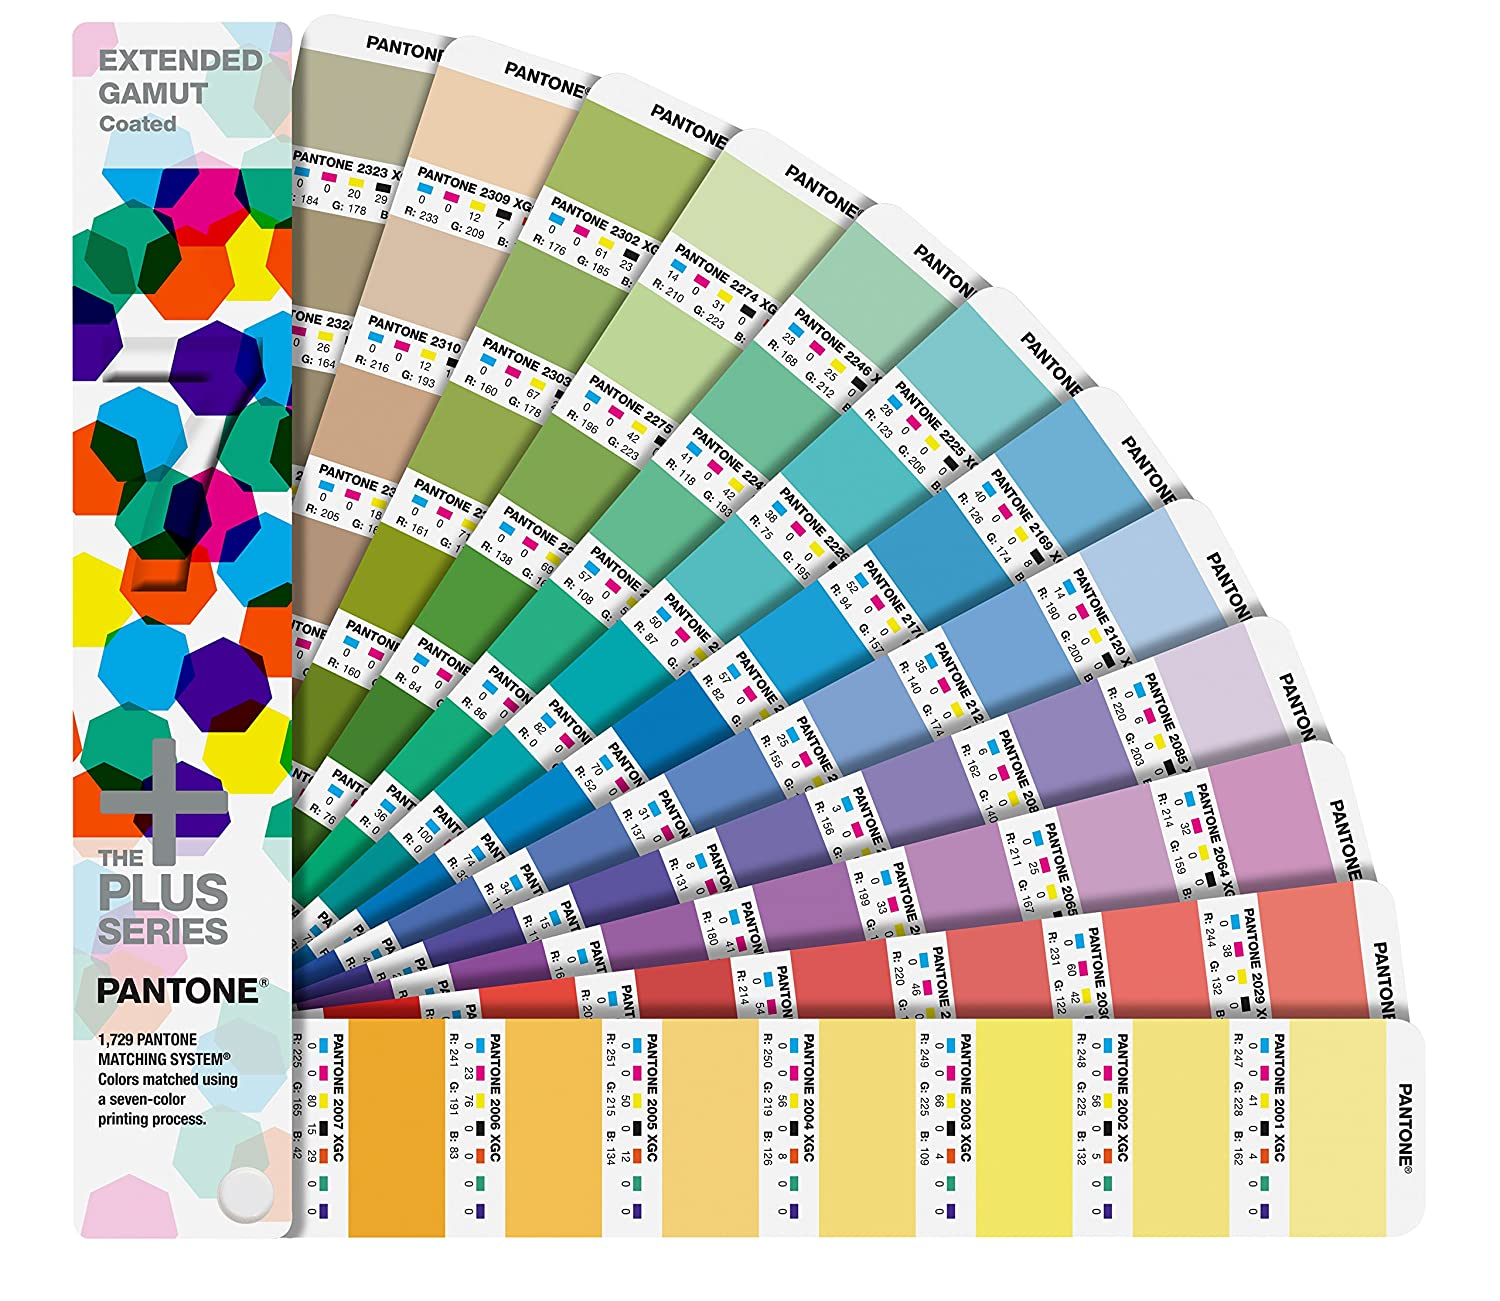 Pantone Abflammgeräte, Extended Gamut Coated Guide, GG7000